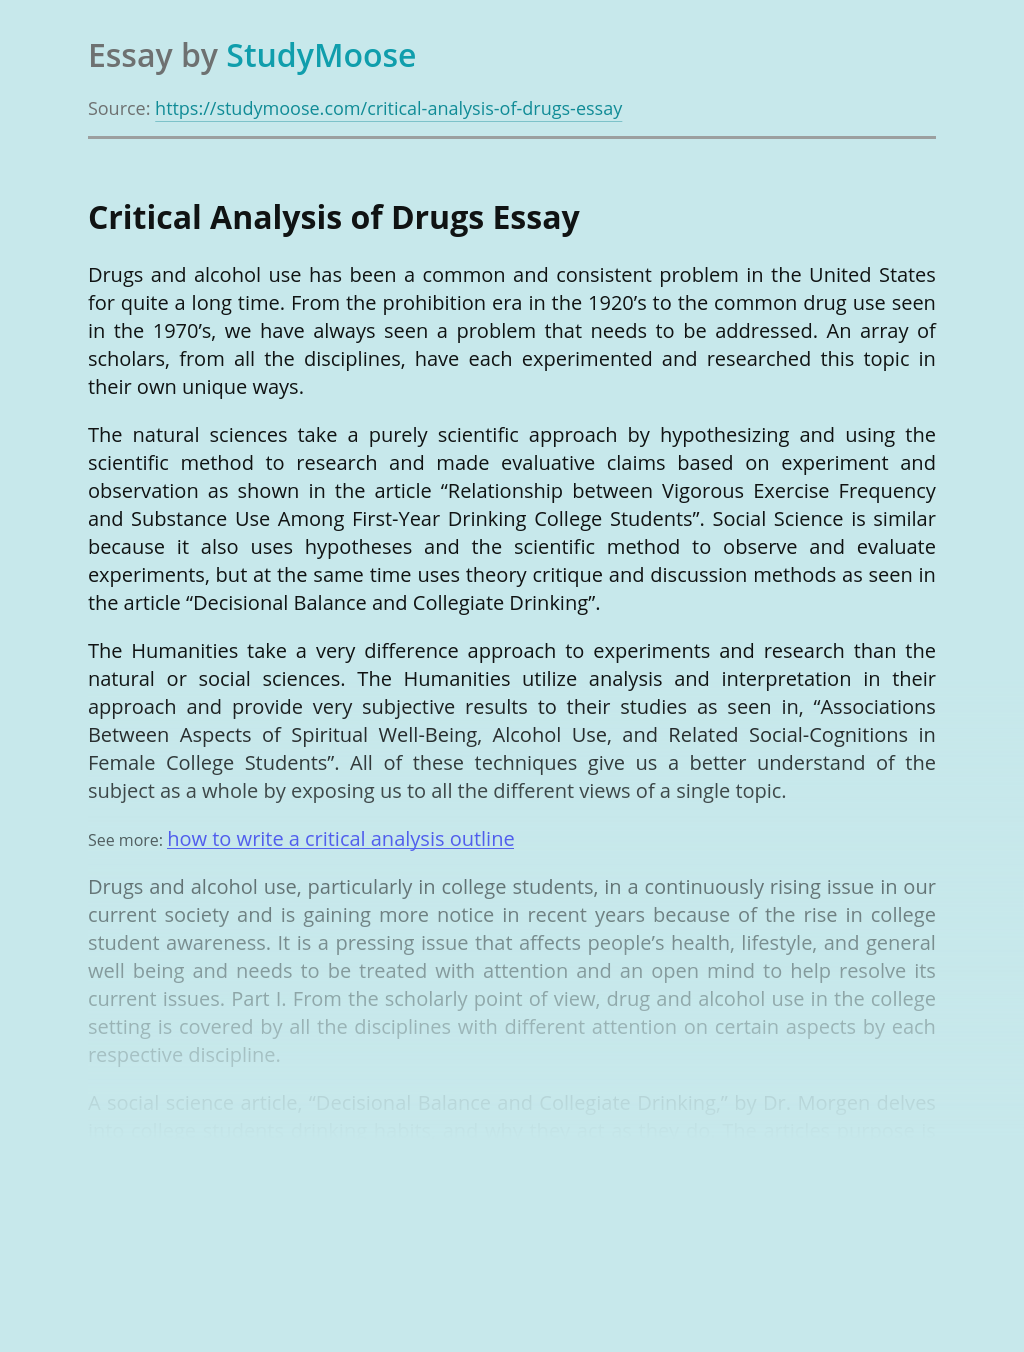 Critical Analysis of Drugs